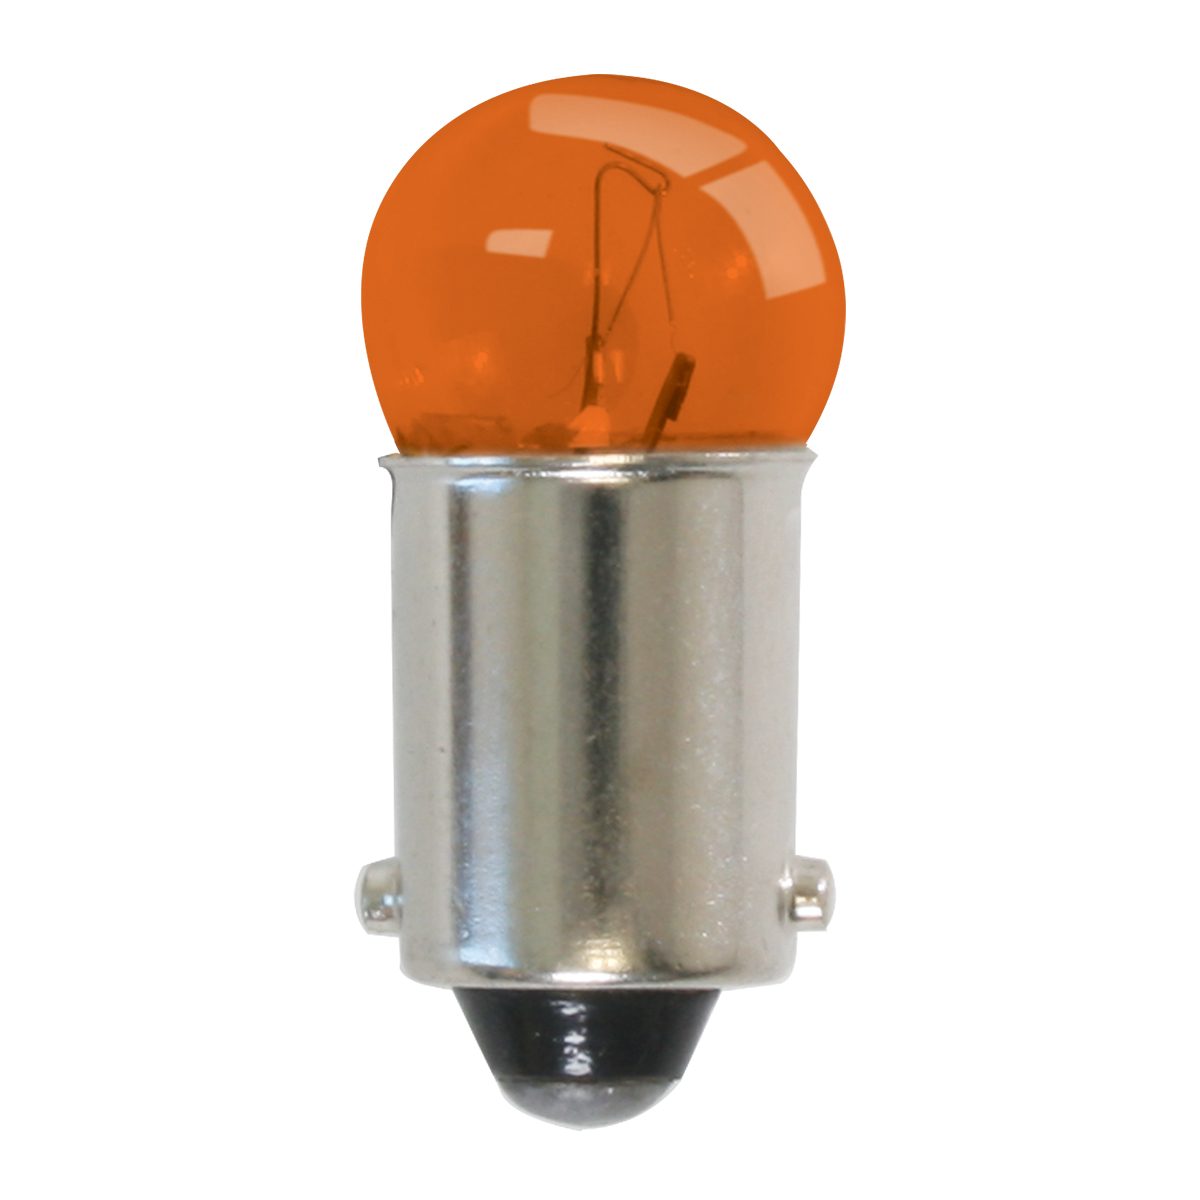 #79100 Miniature Replacement #1445 Amber Light Bulb